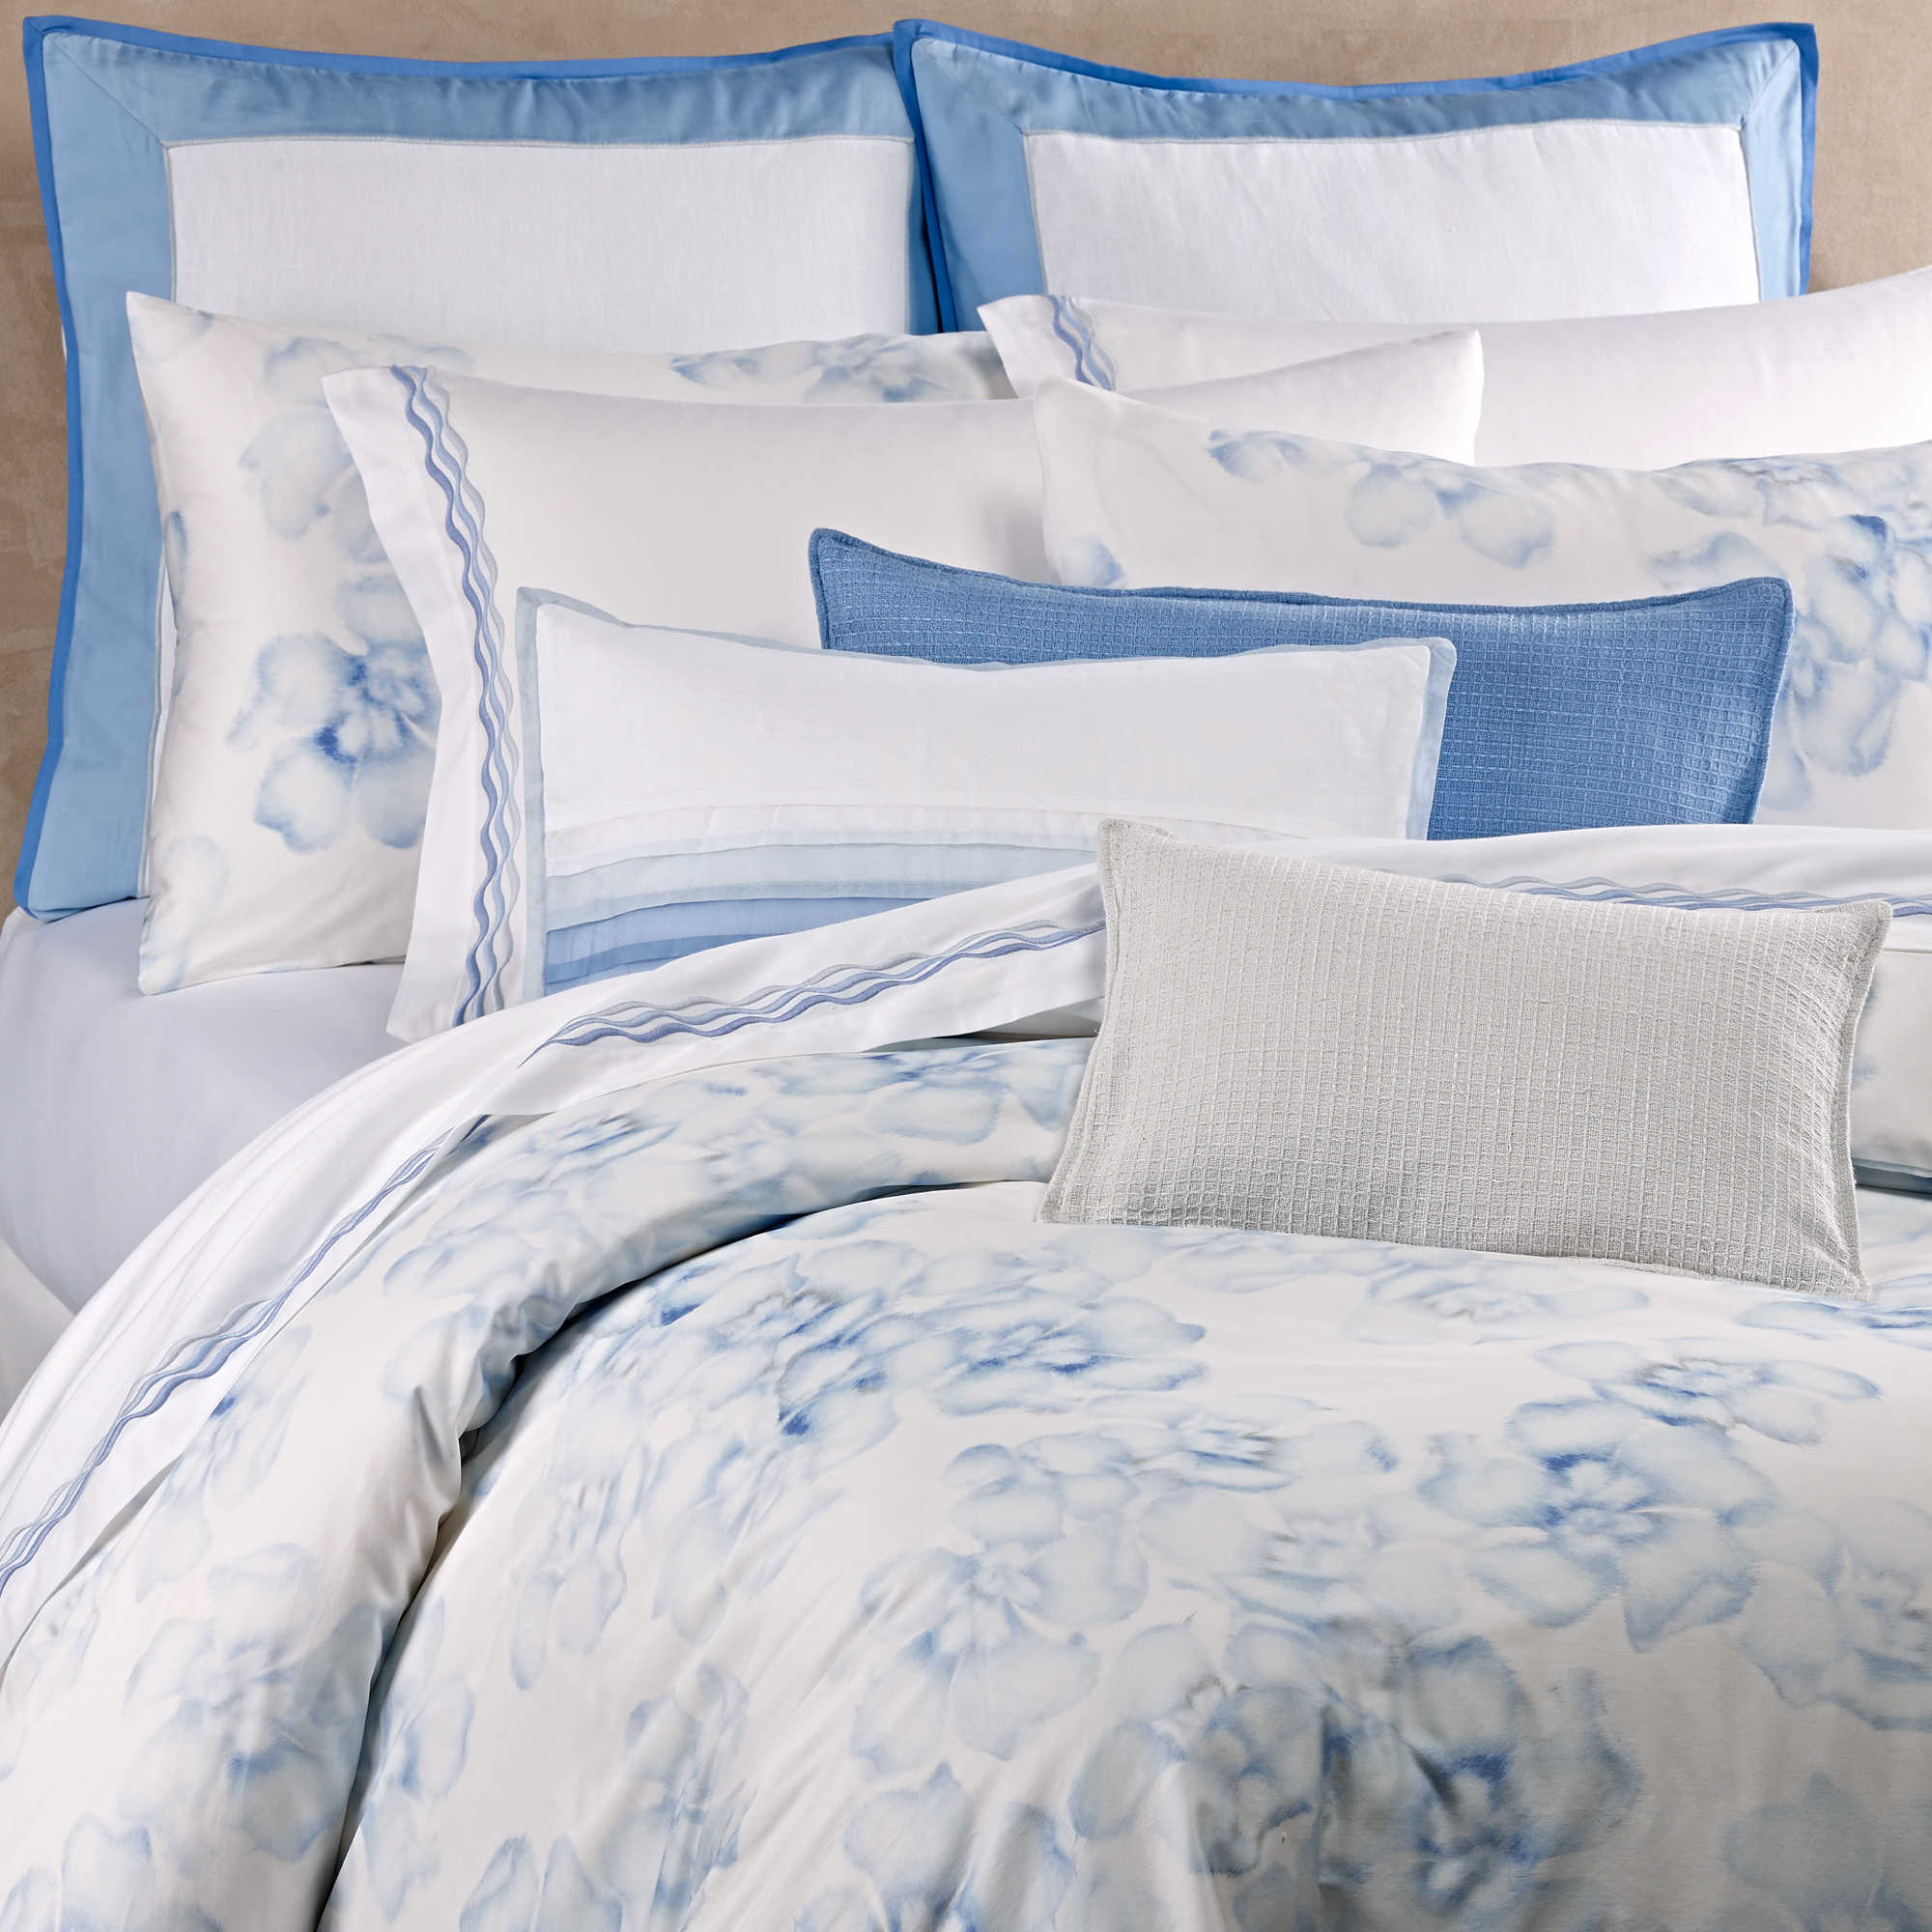 adorable white snow pillow and natori bedding